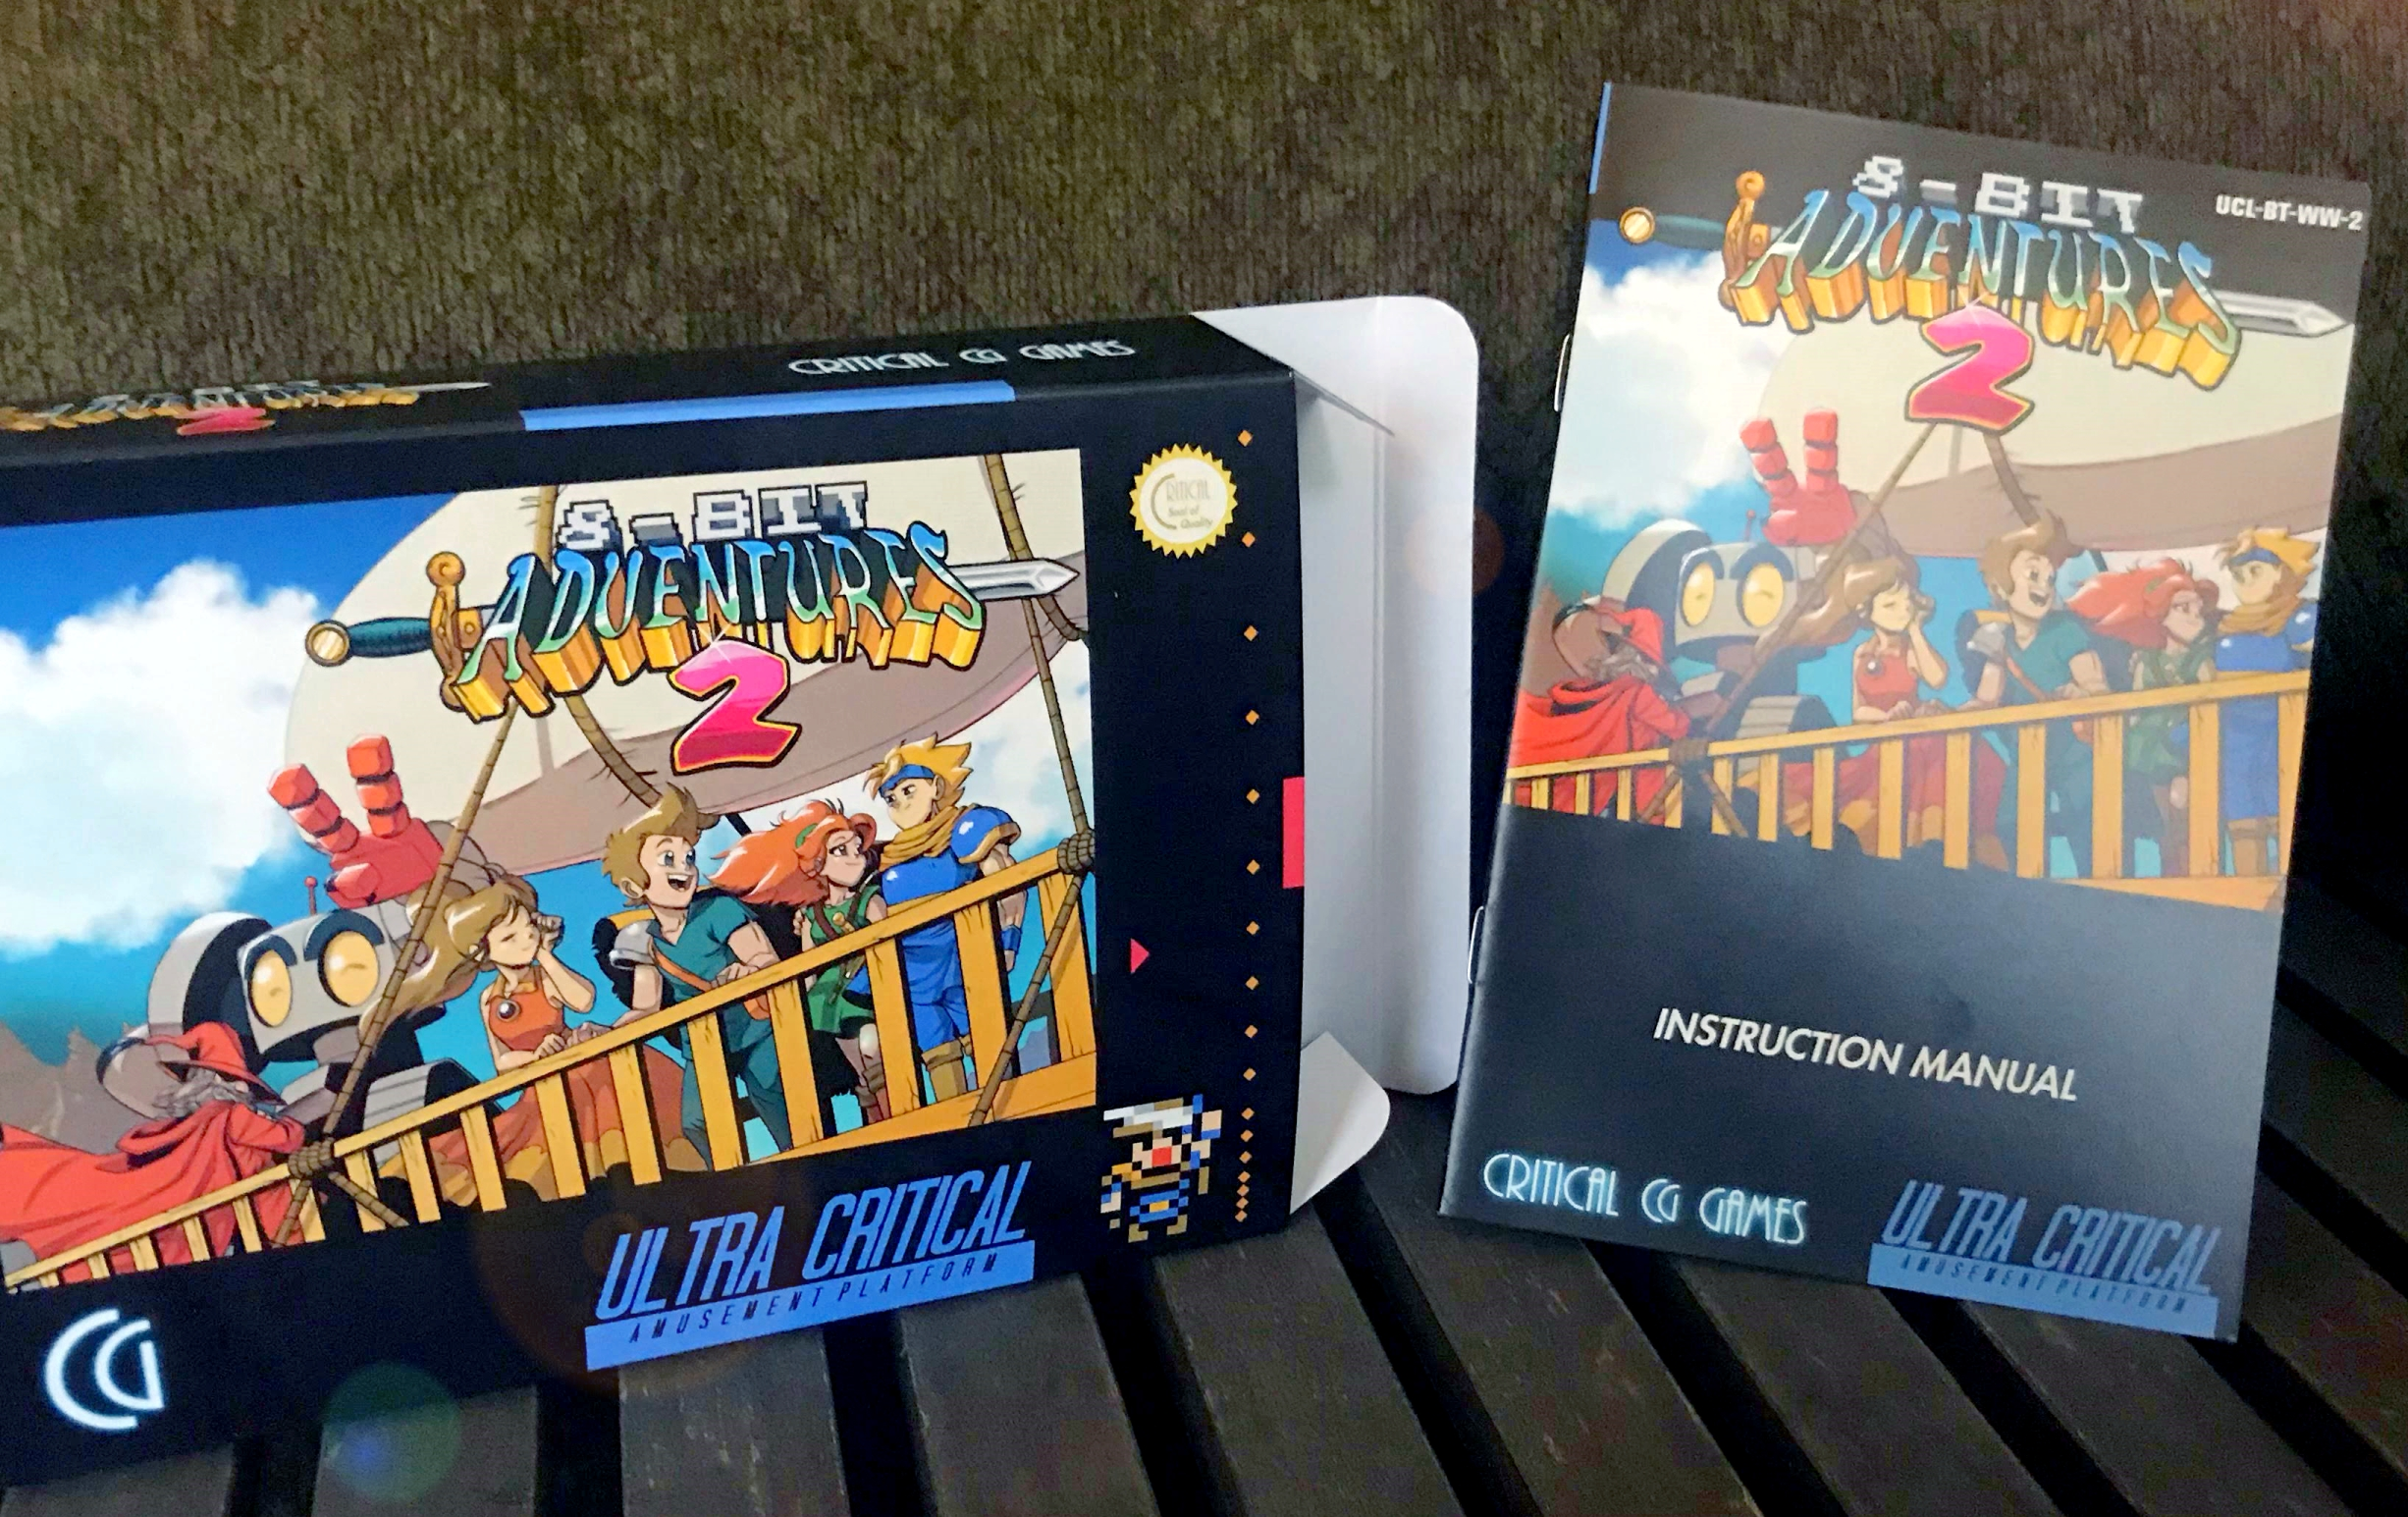 8-Bit Adventures 2 Box and Manual Prize for 2019